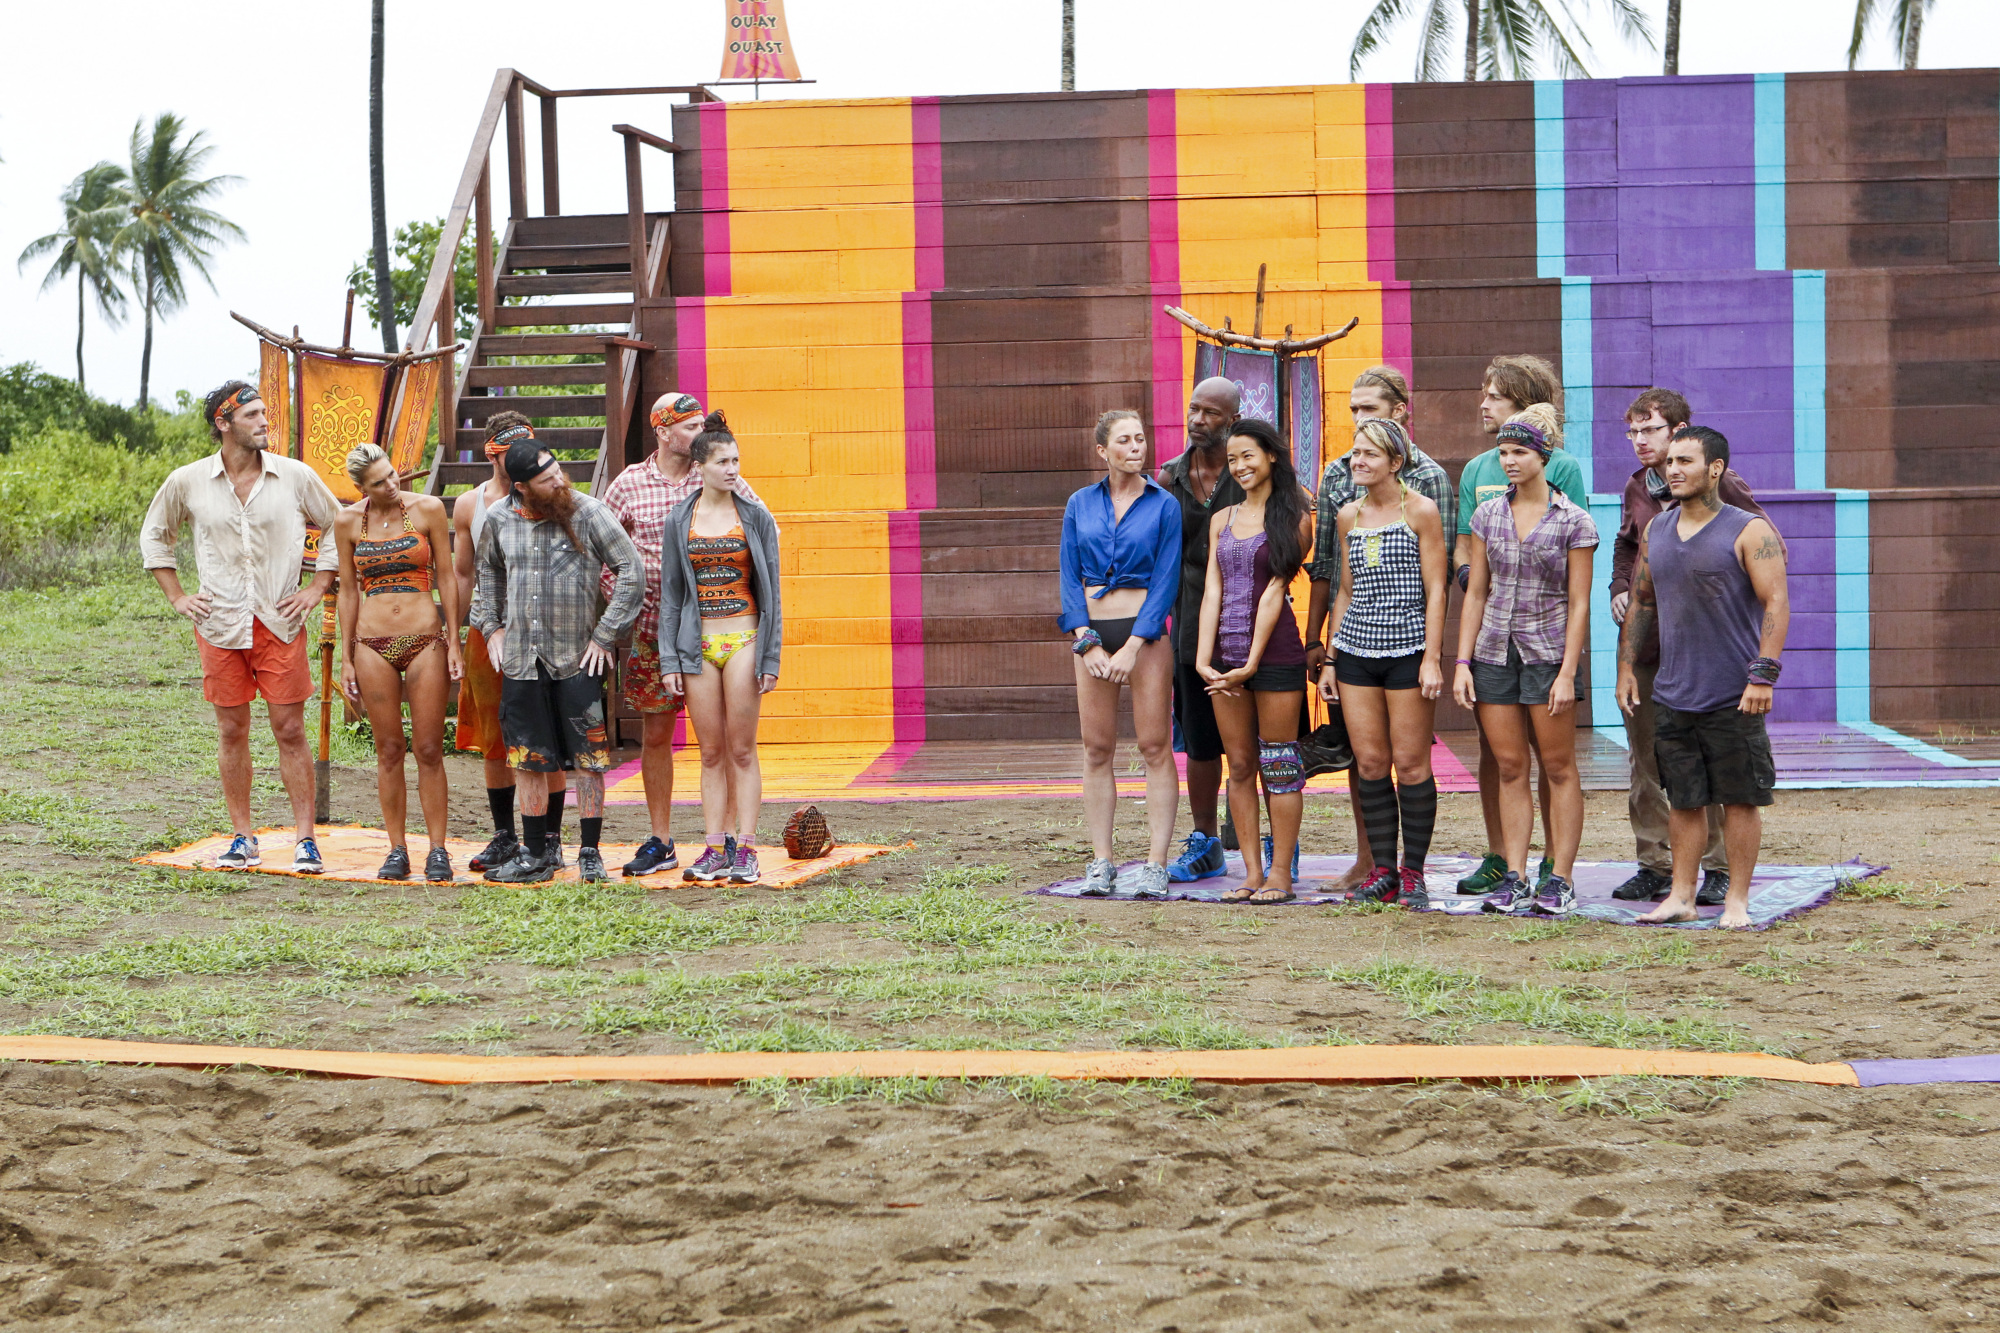 Lining up for the Immunity Challenge in